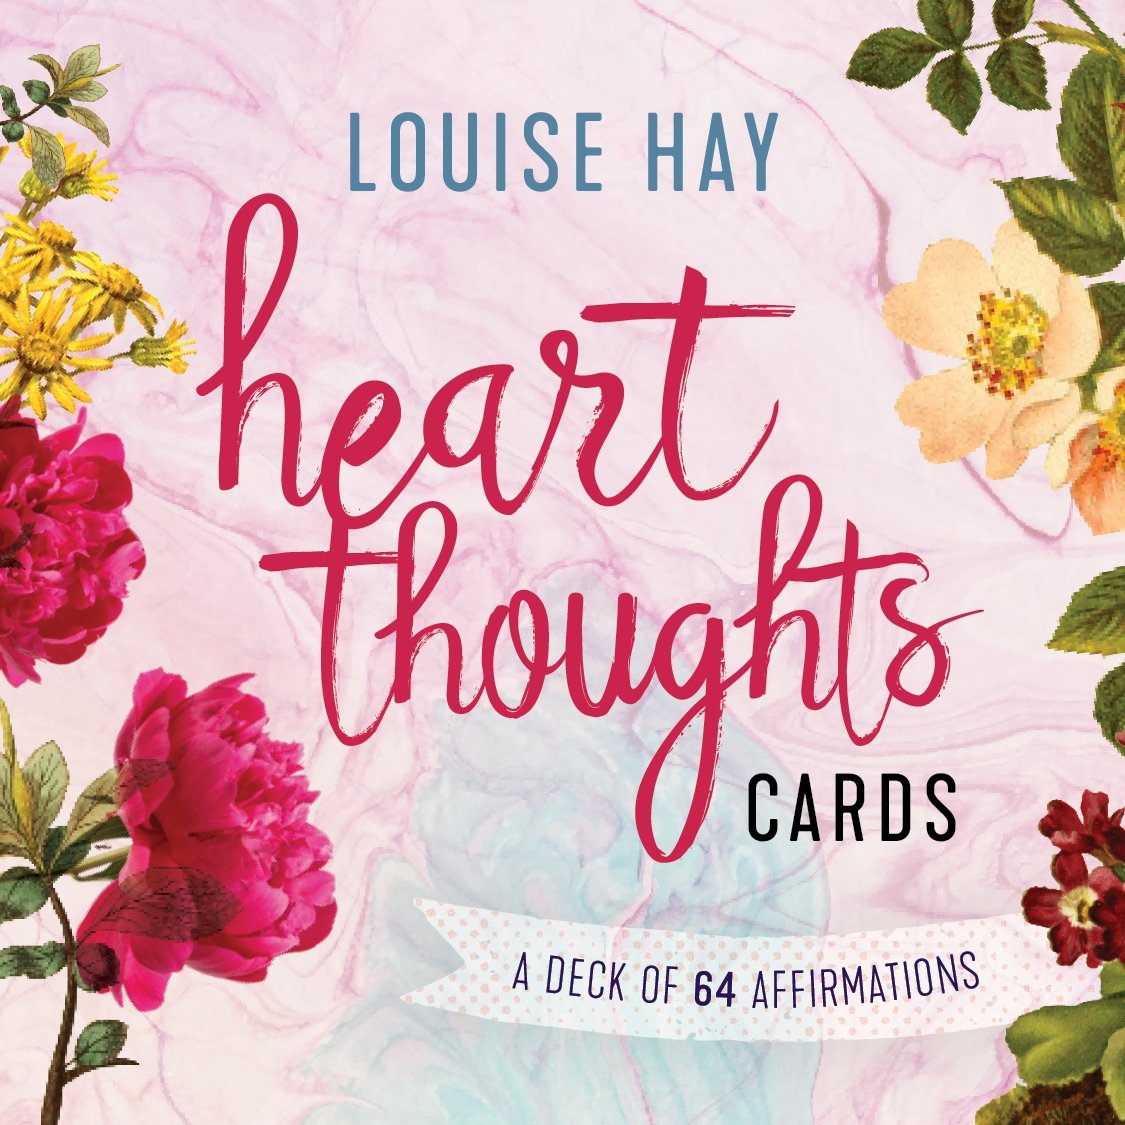 Heart Thoughts Cards A Deck Of 64 Affirmations by Louise L Hay